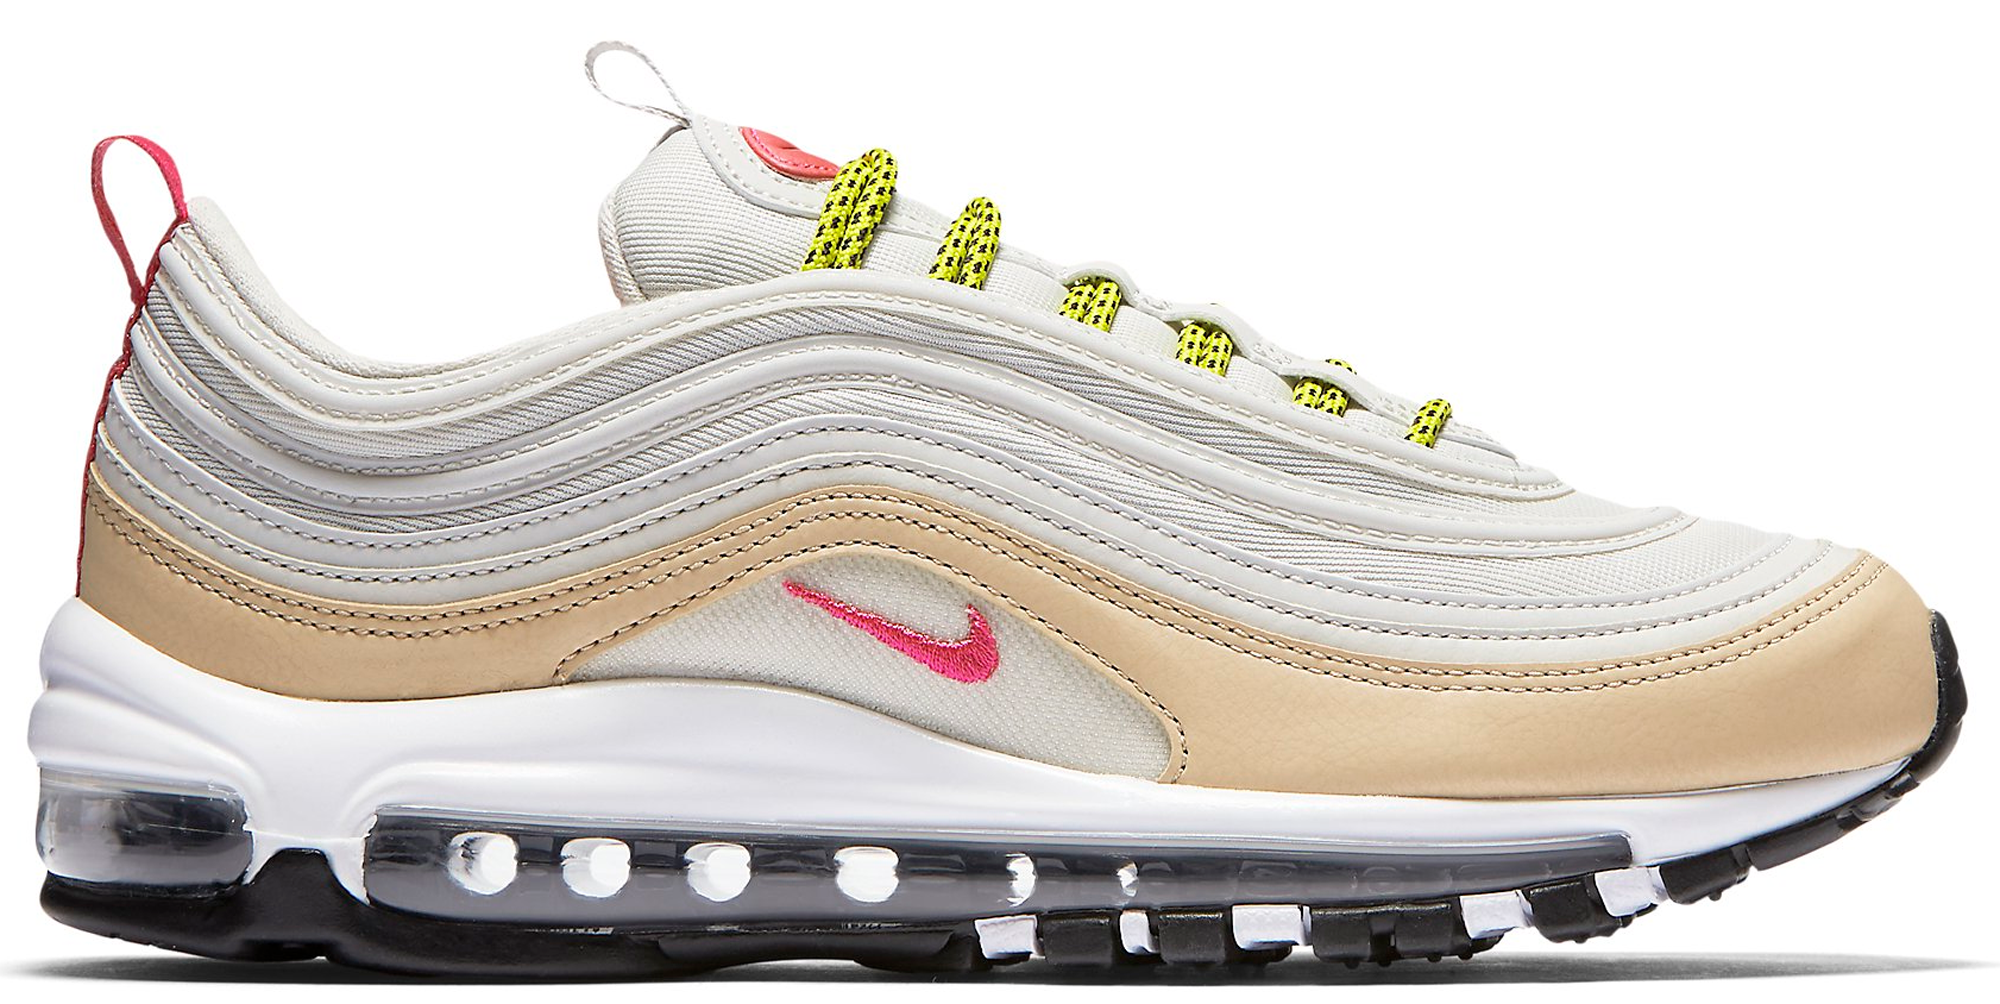 Nike Air Max 97 Light Bone Deadly Pink